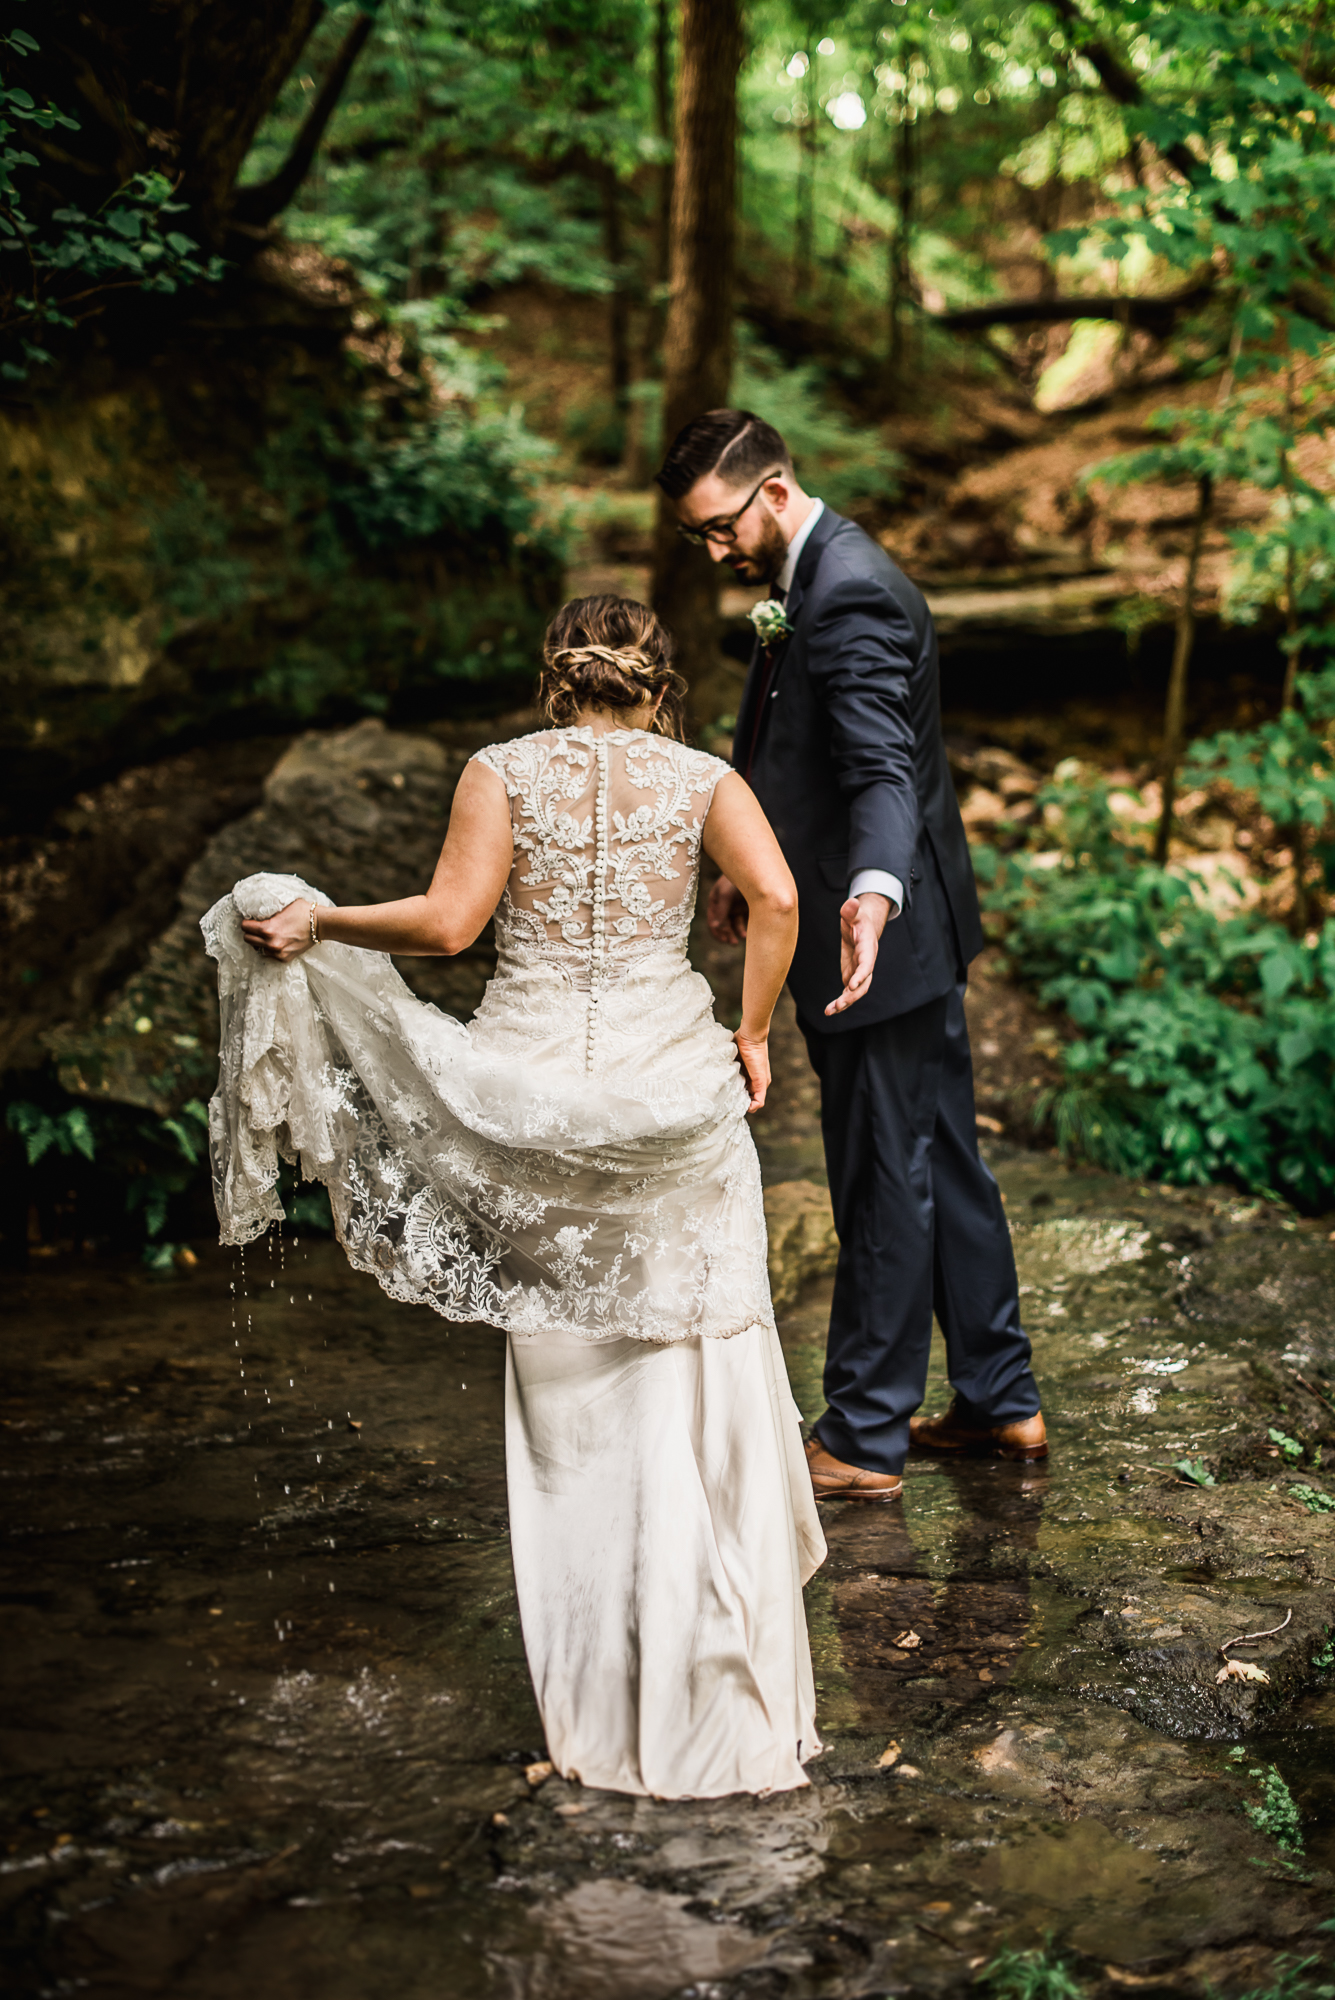 Melissa Cervantes Photography _ Kelsey + Ben Junebug Weddings Submission-83.jpg